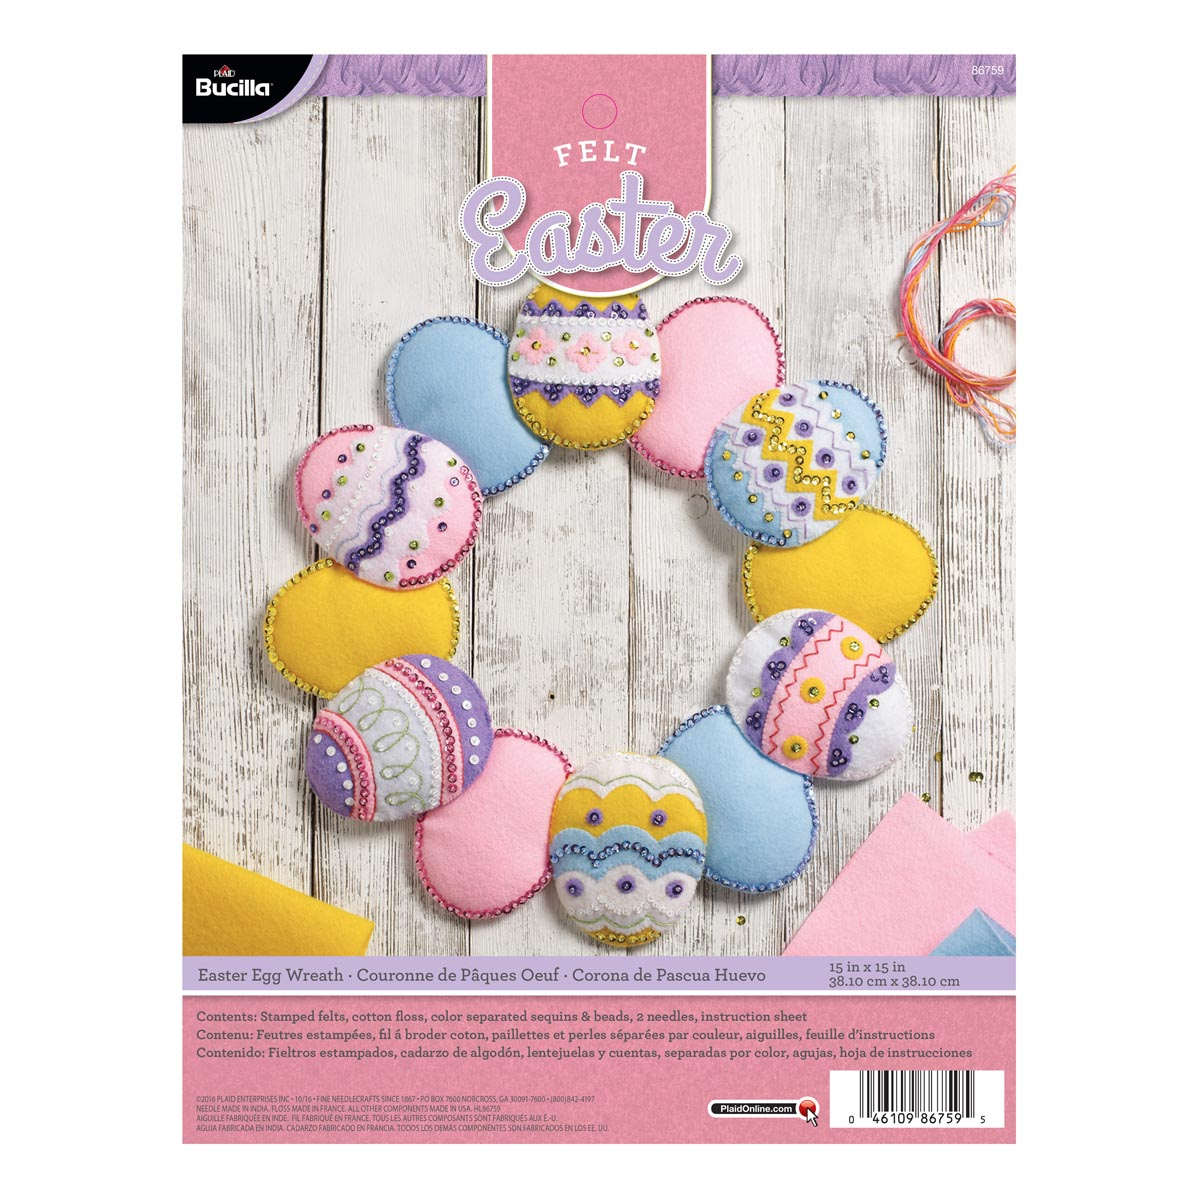 Bucilla ® Seasonal - Felt - Home Decor - Easter Eggs Wreath